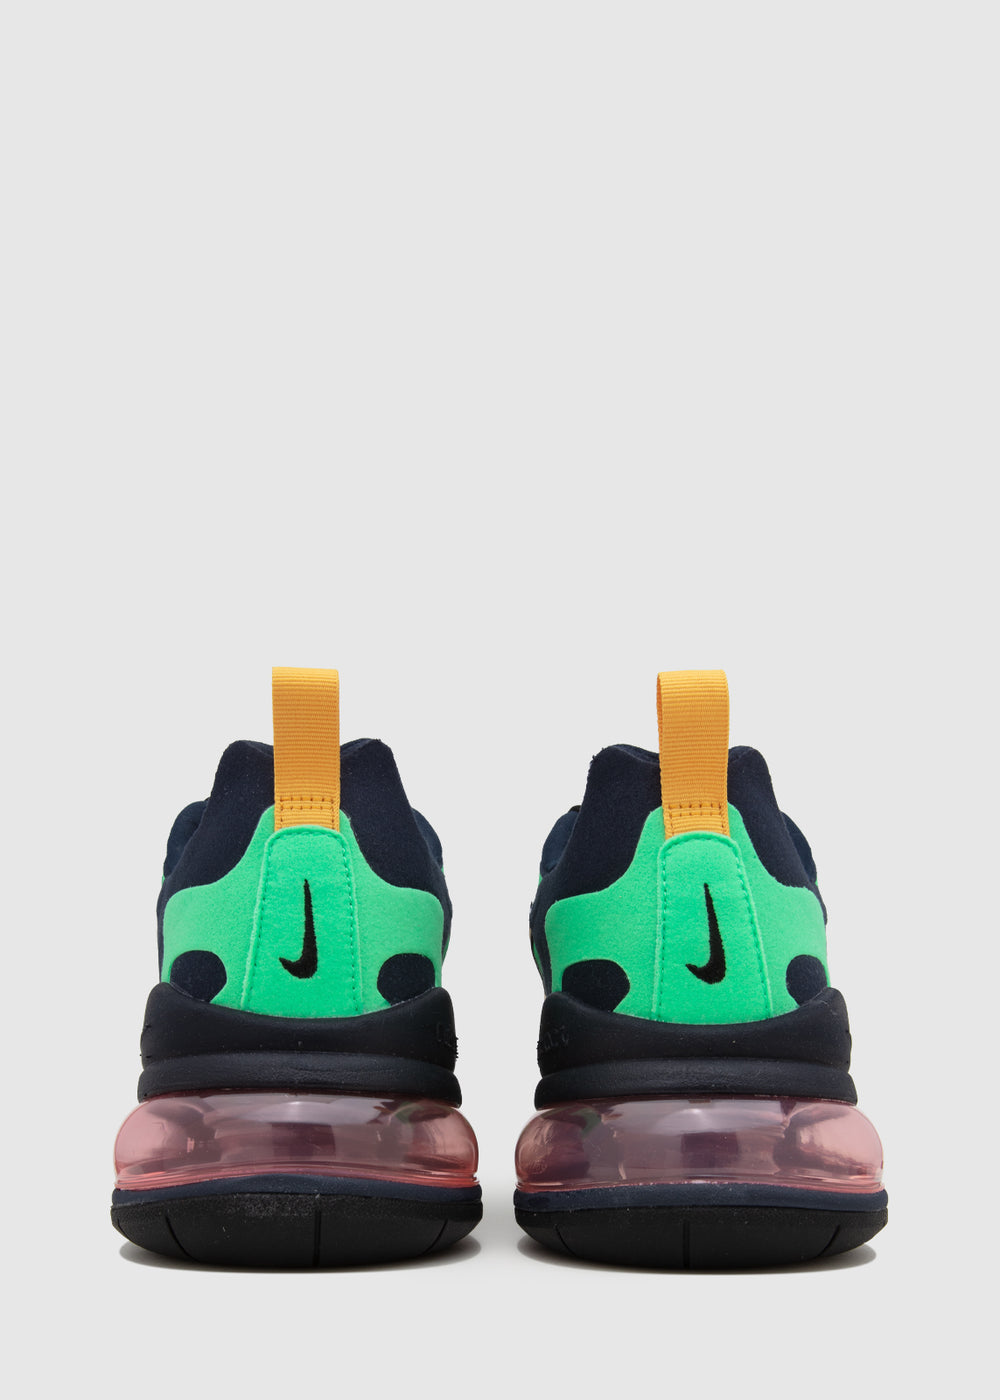 nike-air-max-270-react-pop-art-green-4